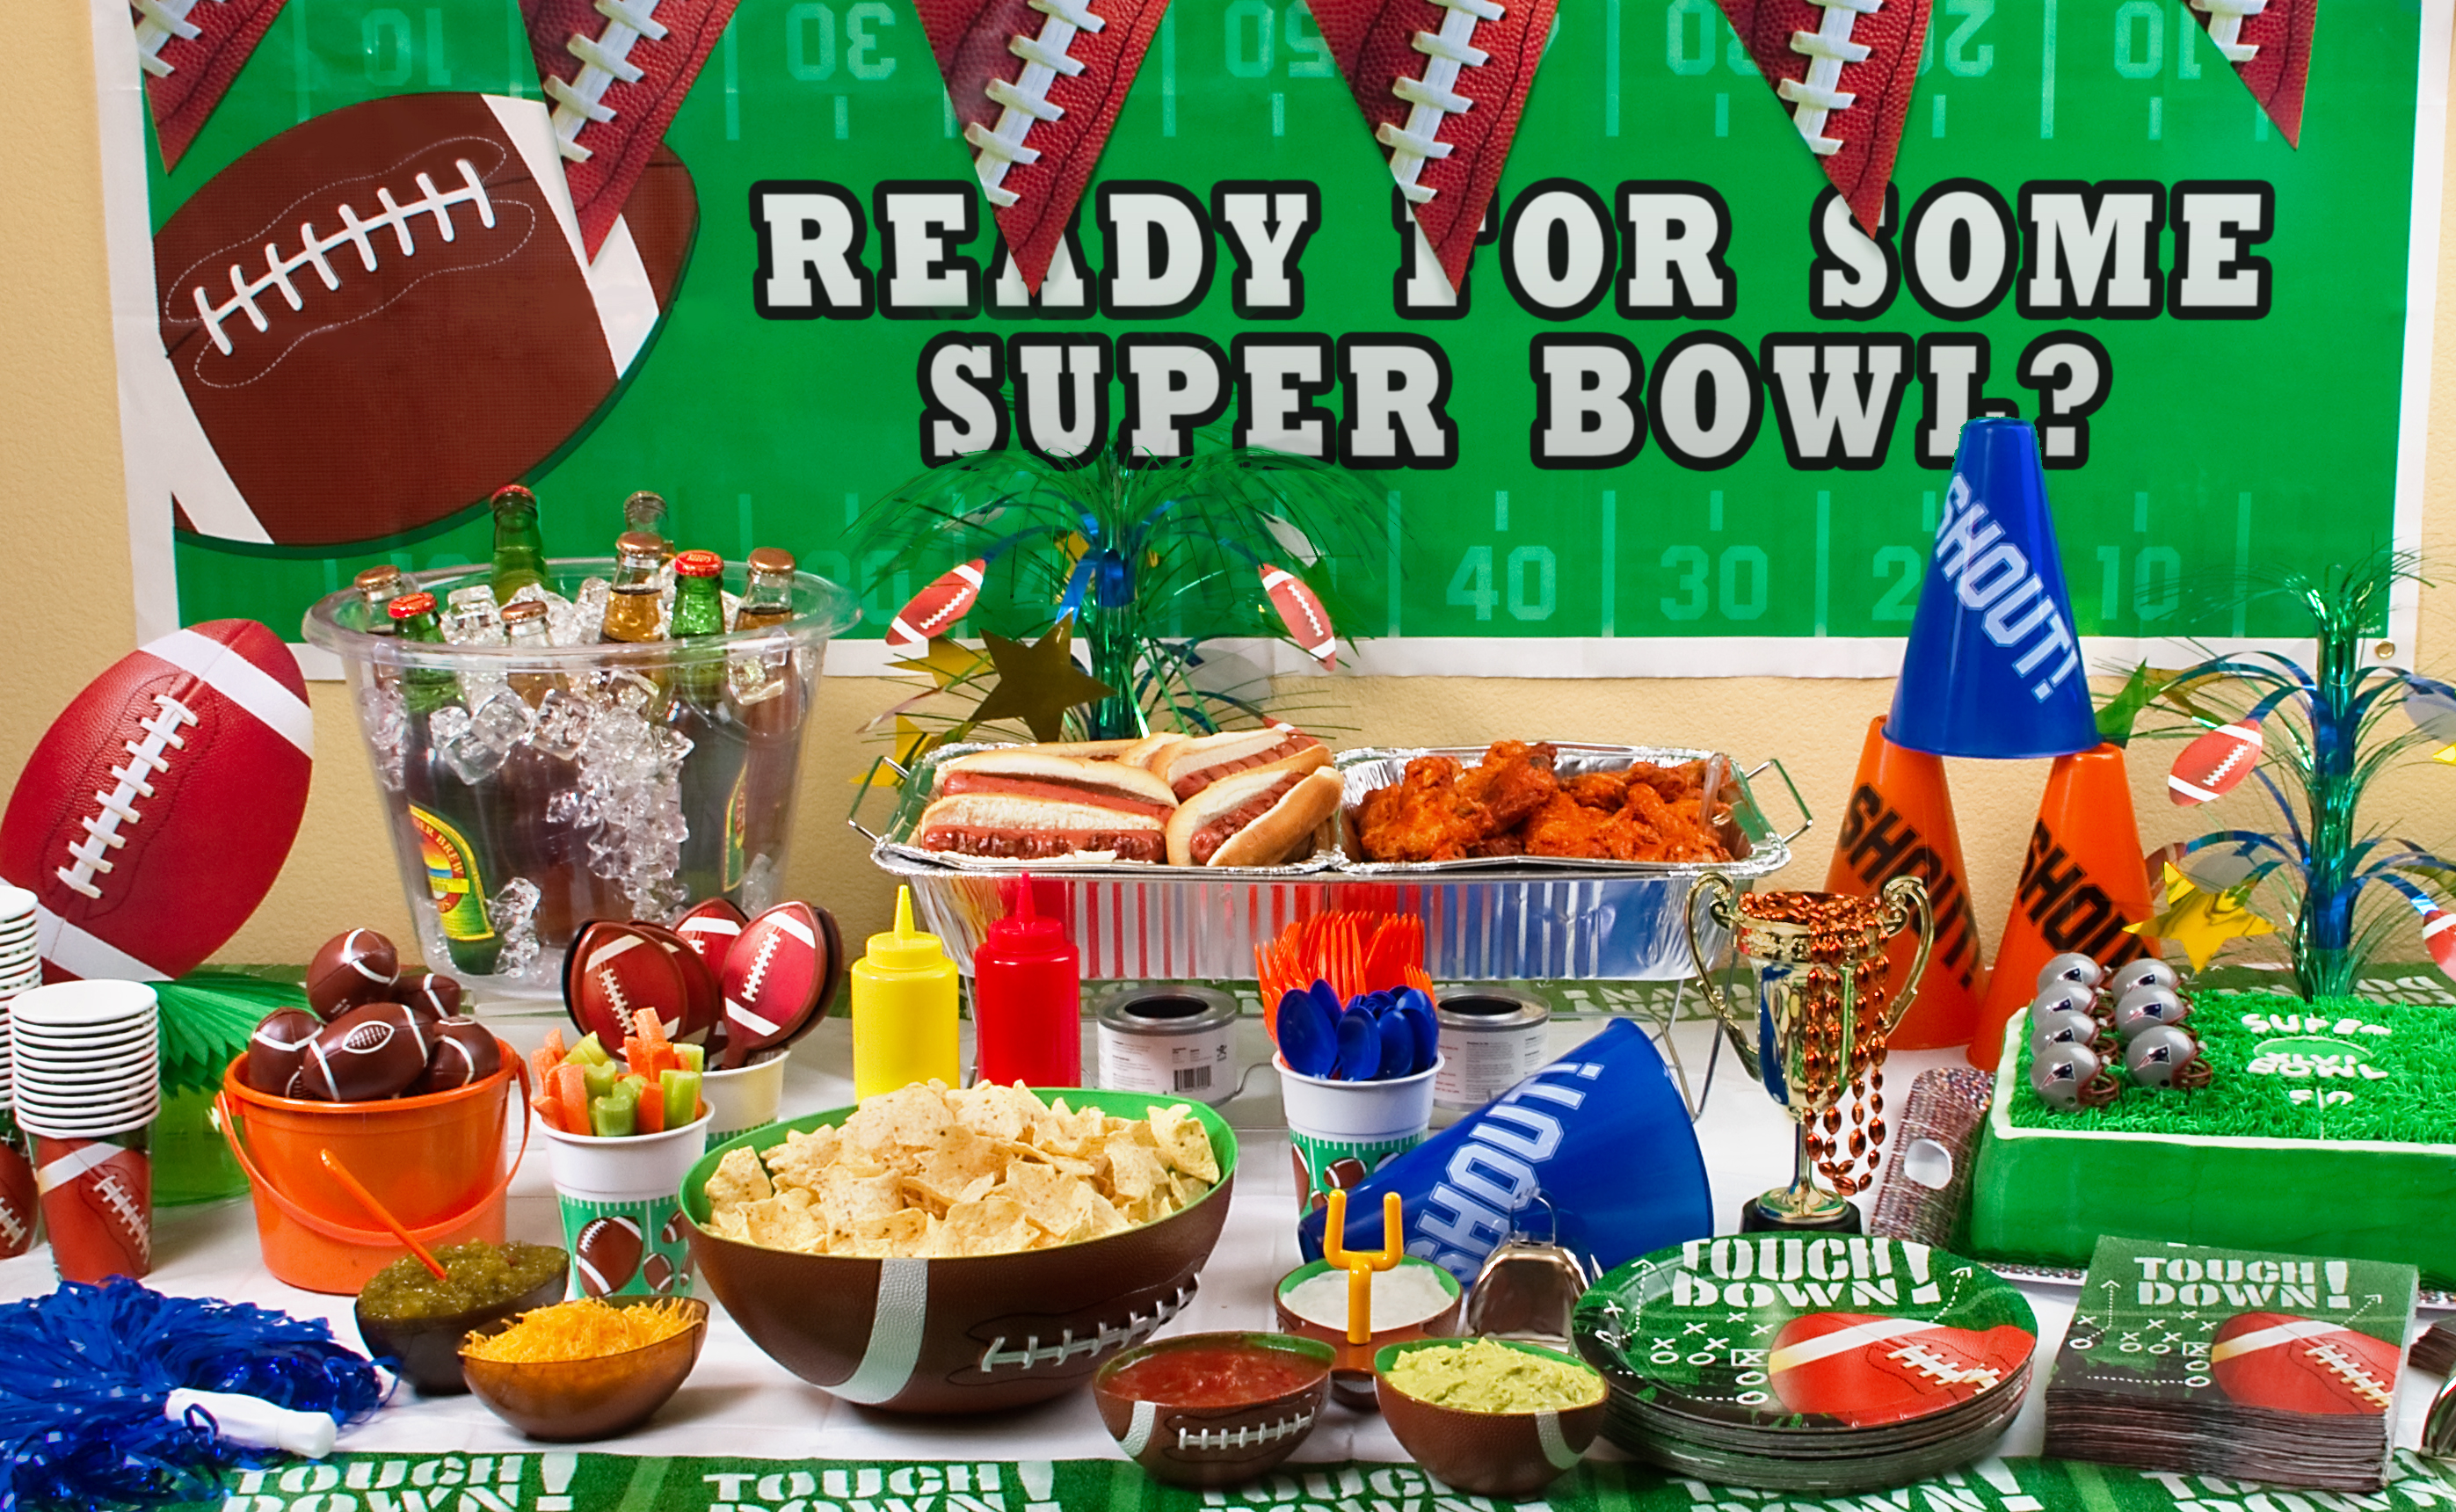 Super bowl party decorating ideas images for Super bowl party items